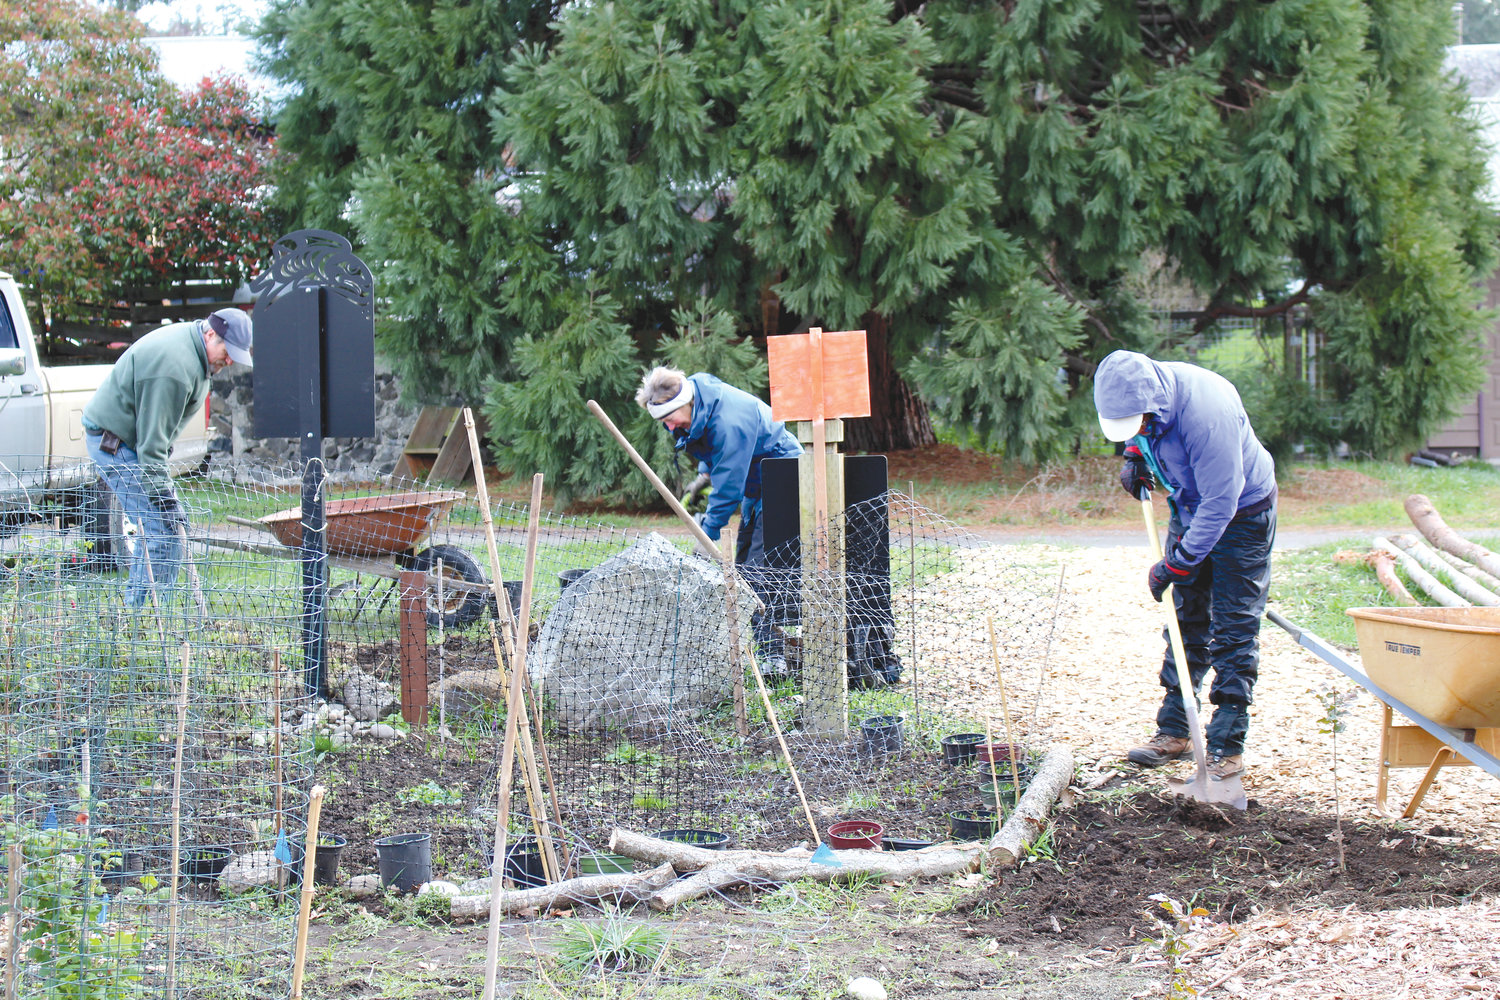 A group of neighbors, volunteers and native plant enthusiasts are planting a native prairie at Froggy Bottoms near Cedar and Pacific streets in Port Townsend.